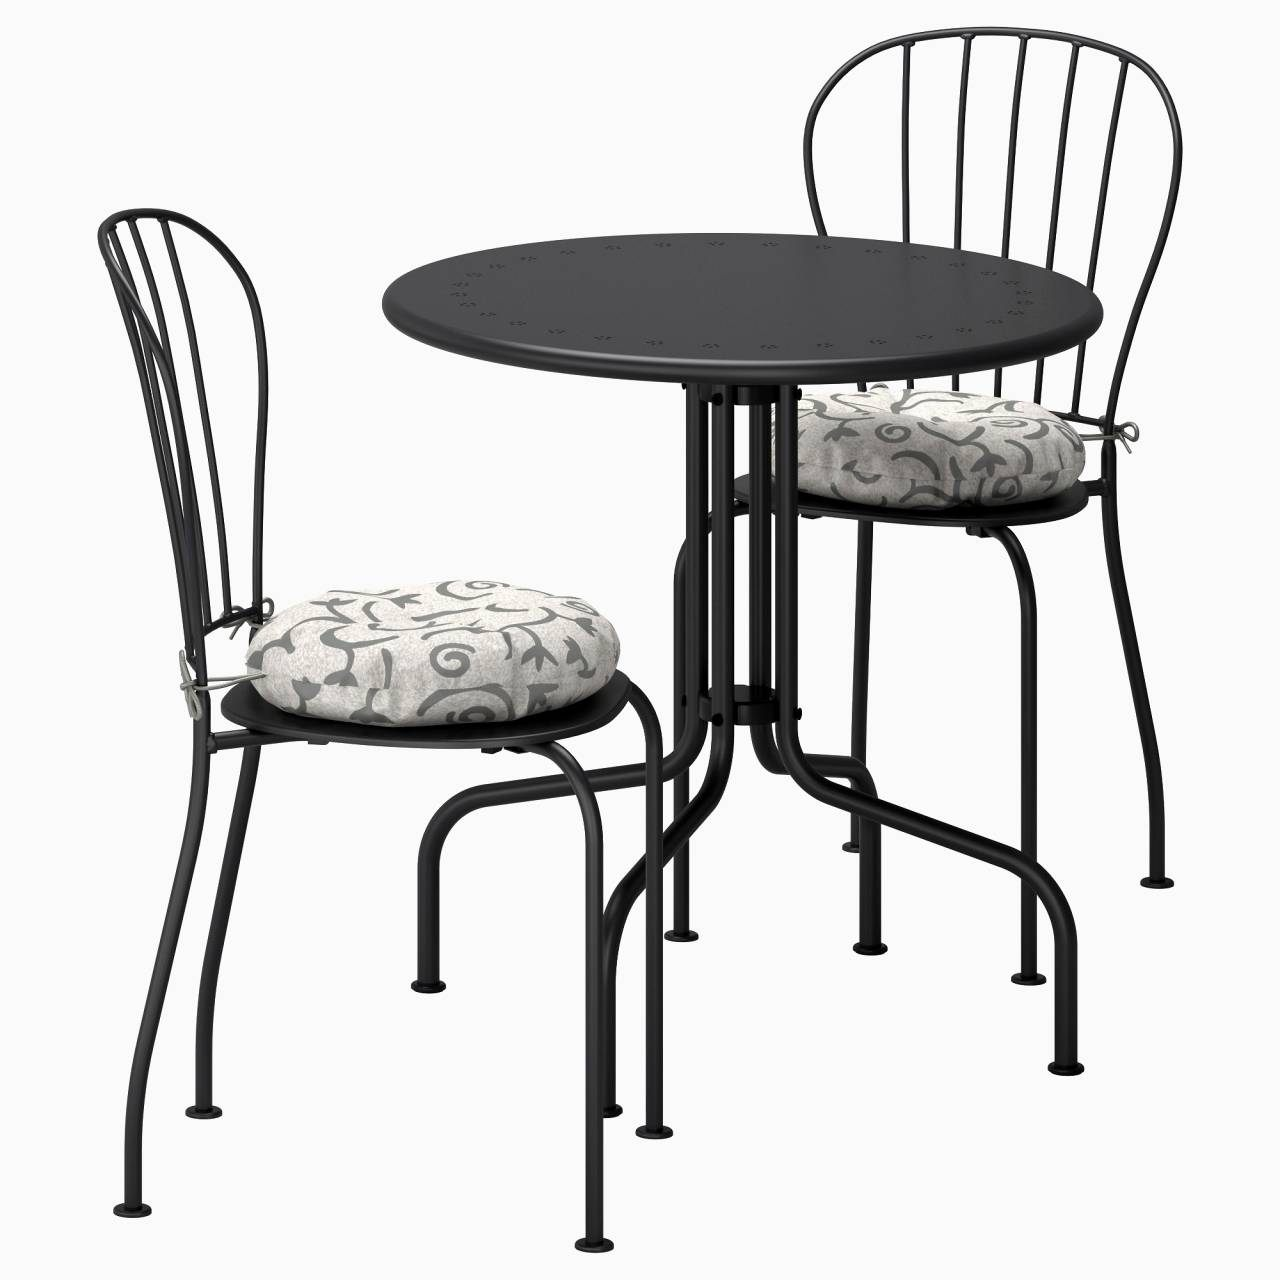 Lit Pliable Ikea Inspirant Salon De Jardin Bois Ikea Interesting Metal Dining Chairs Ikea